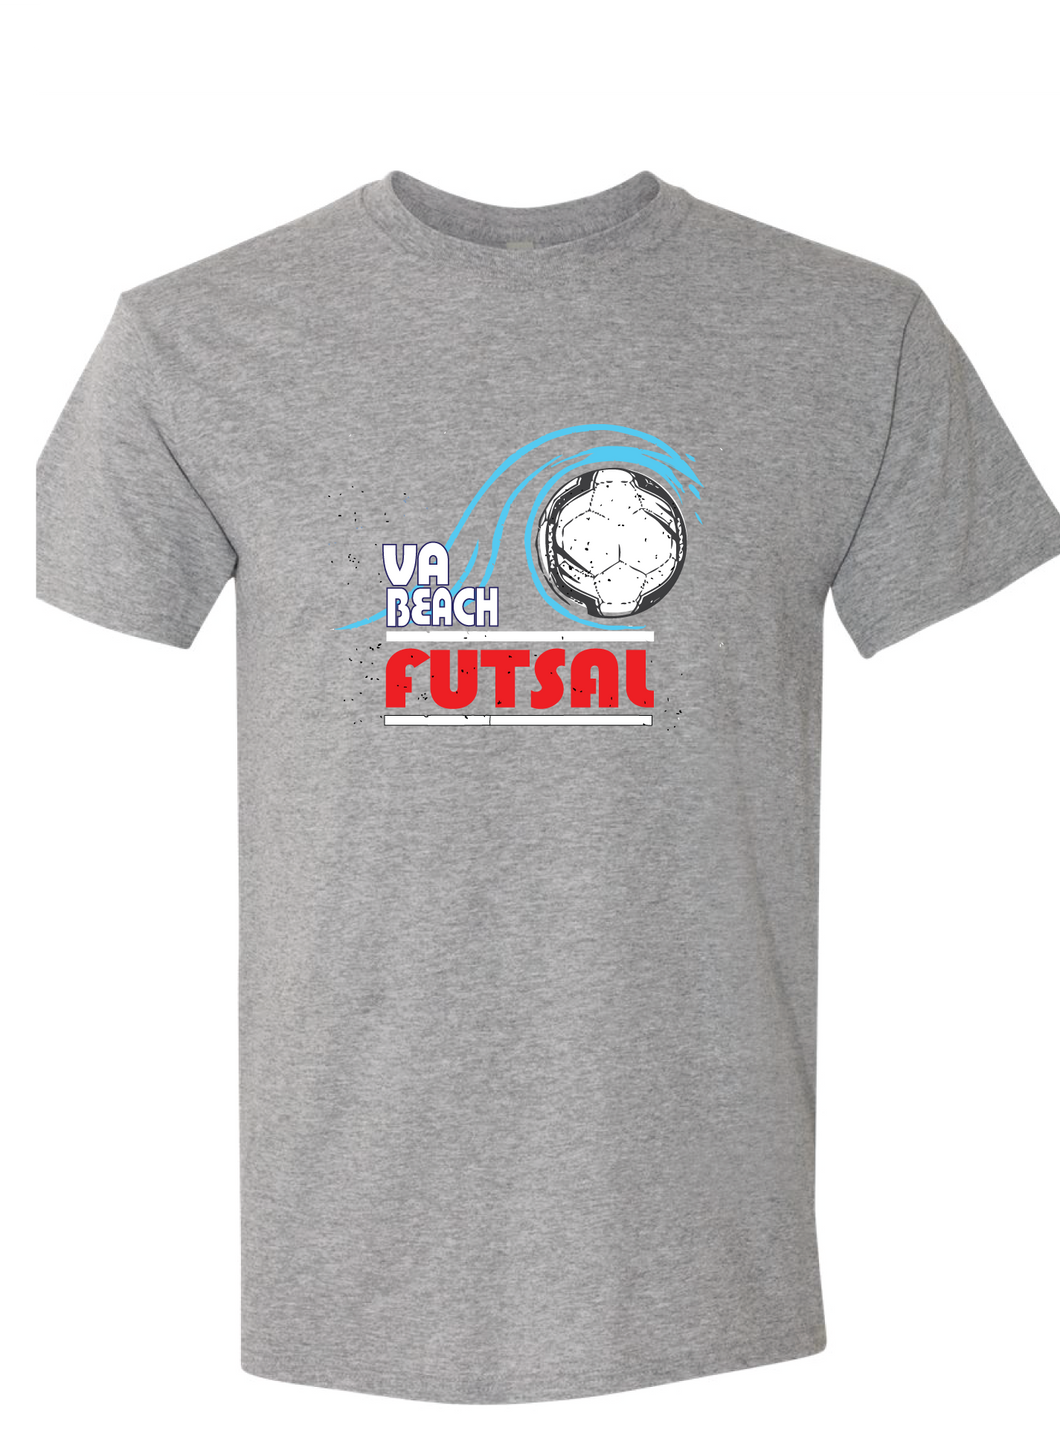 Vintage Short Sleeve T-Shirt (Youth & Adult) / Grey / VB FUTSAL